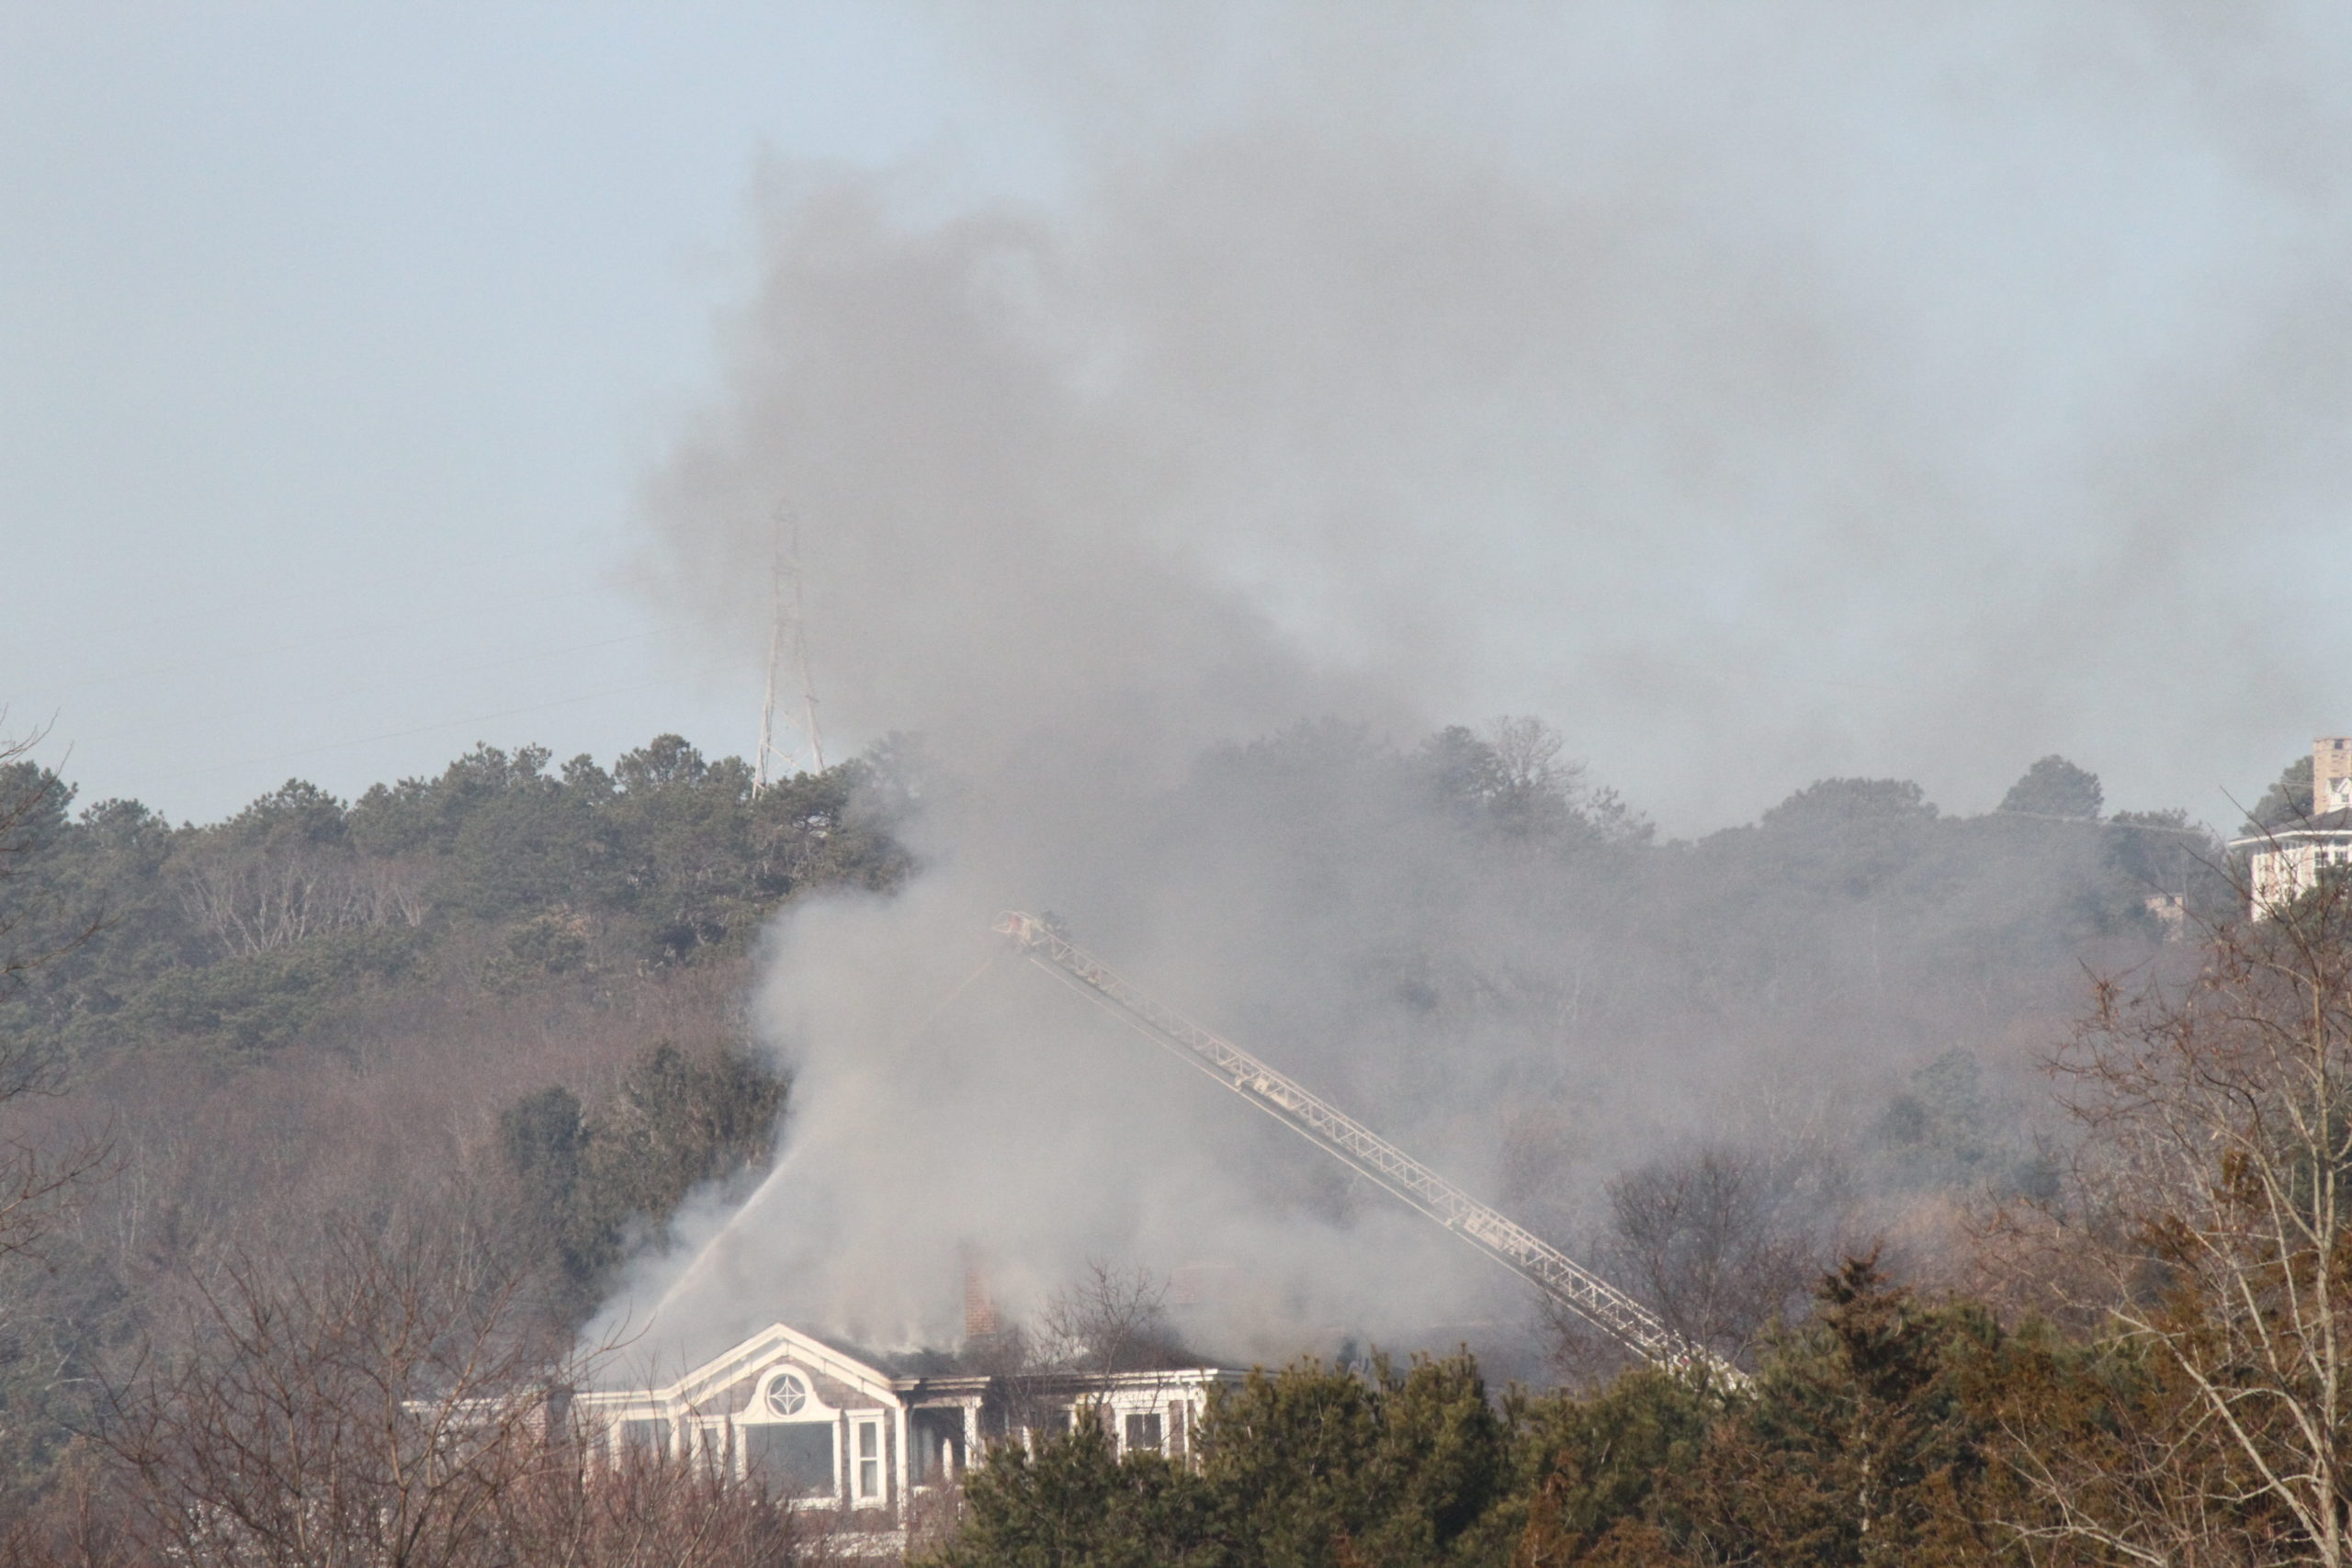 Fire destroyed a Water Mill mansion on Saturday morning. The house was on Little Noyac Path, which does not have fire hydrants, forcing fire crews from throughout the South Fork to rely on tanker trucks to supply the water needed to fight the flames.